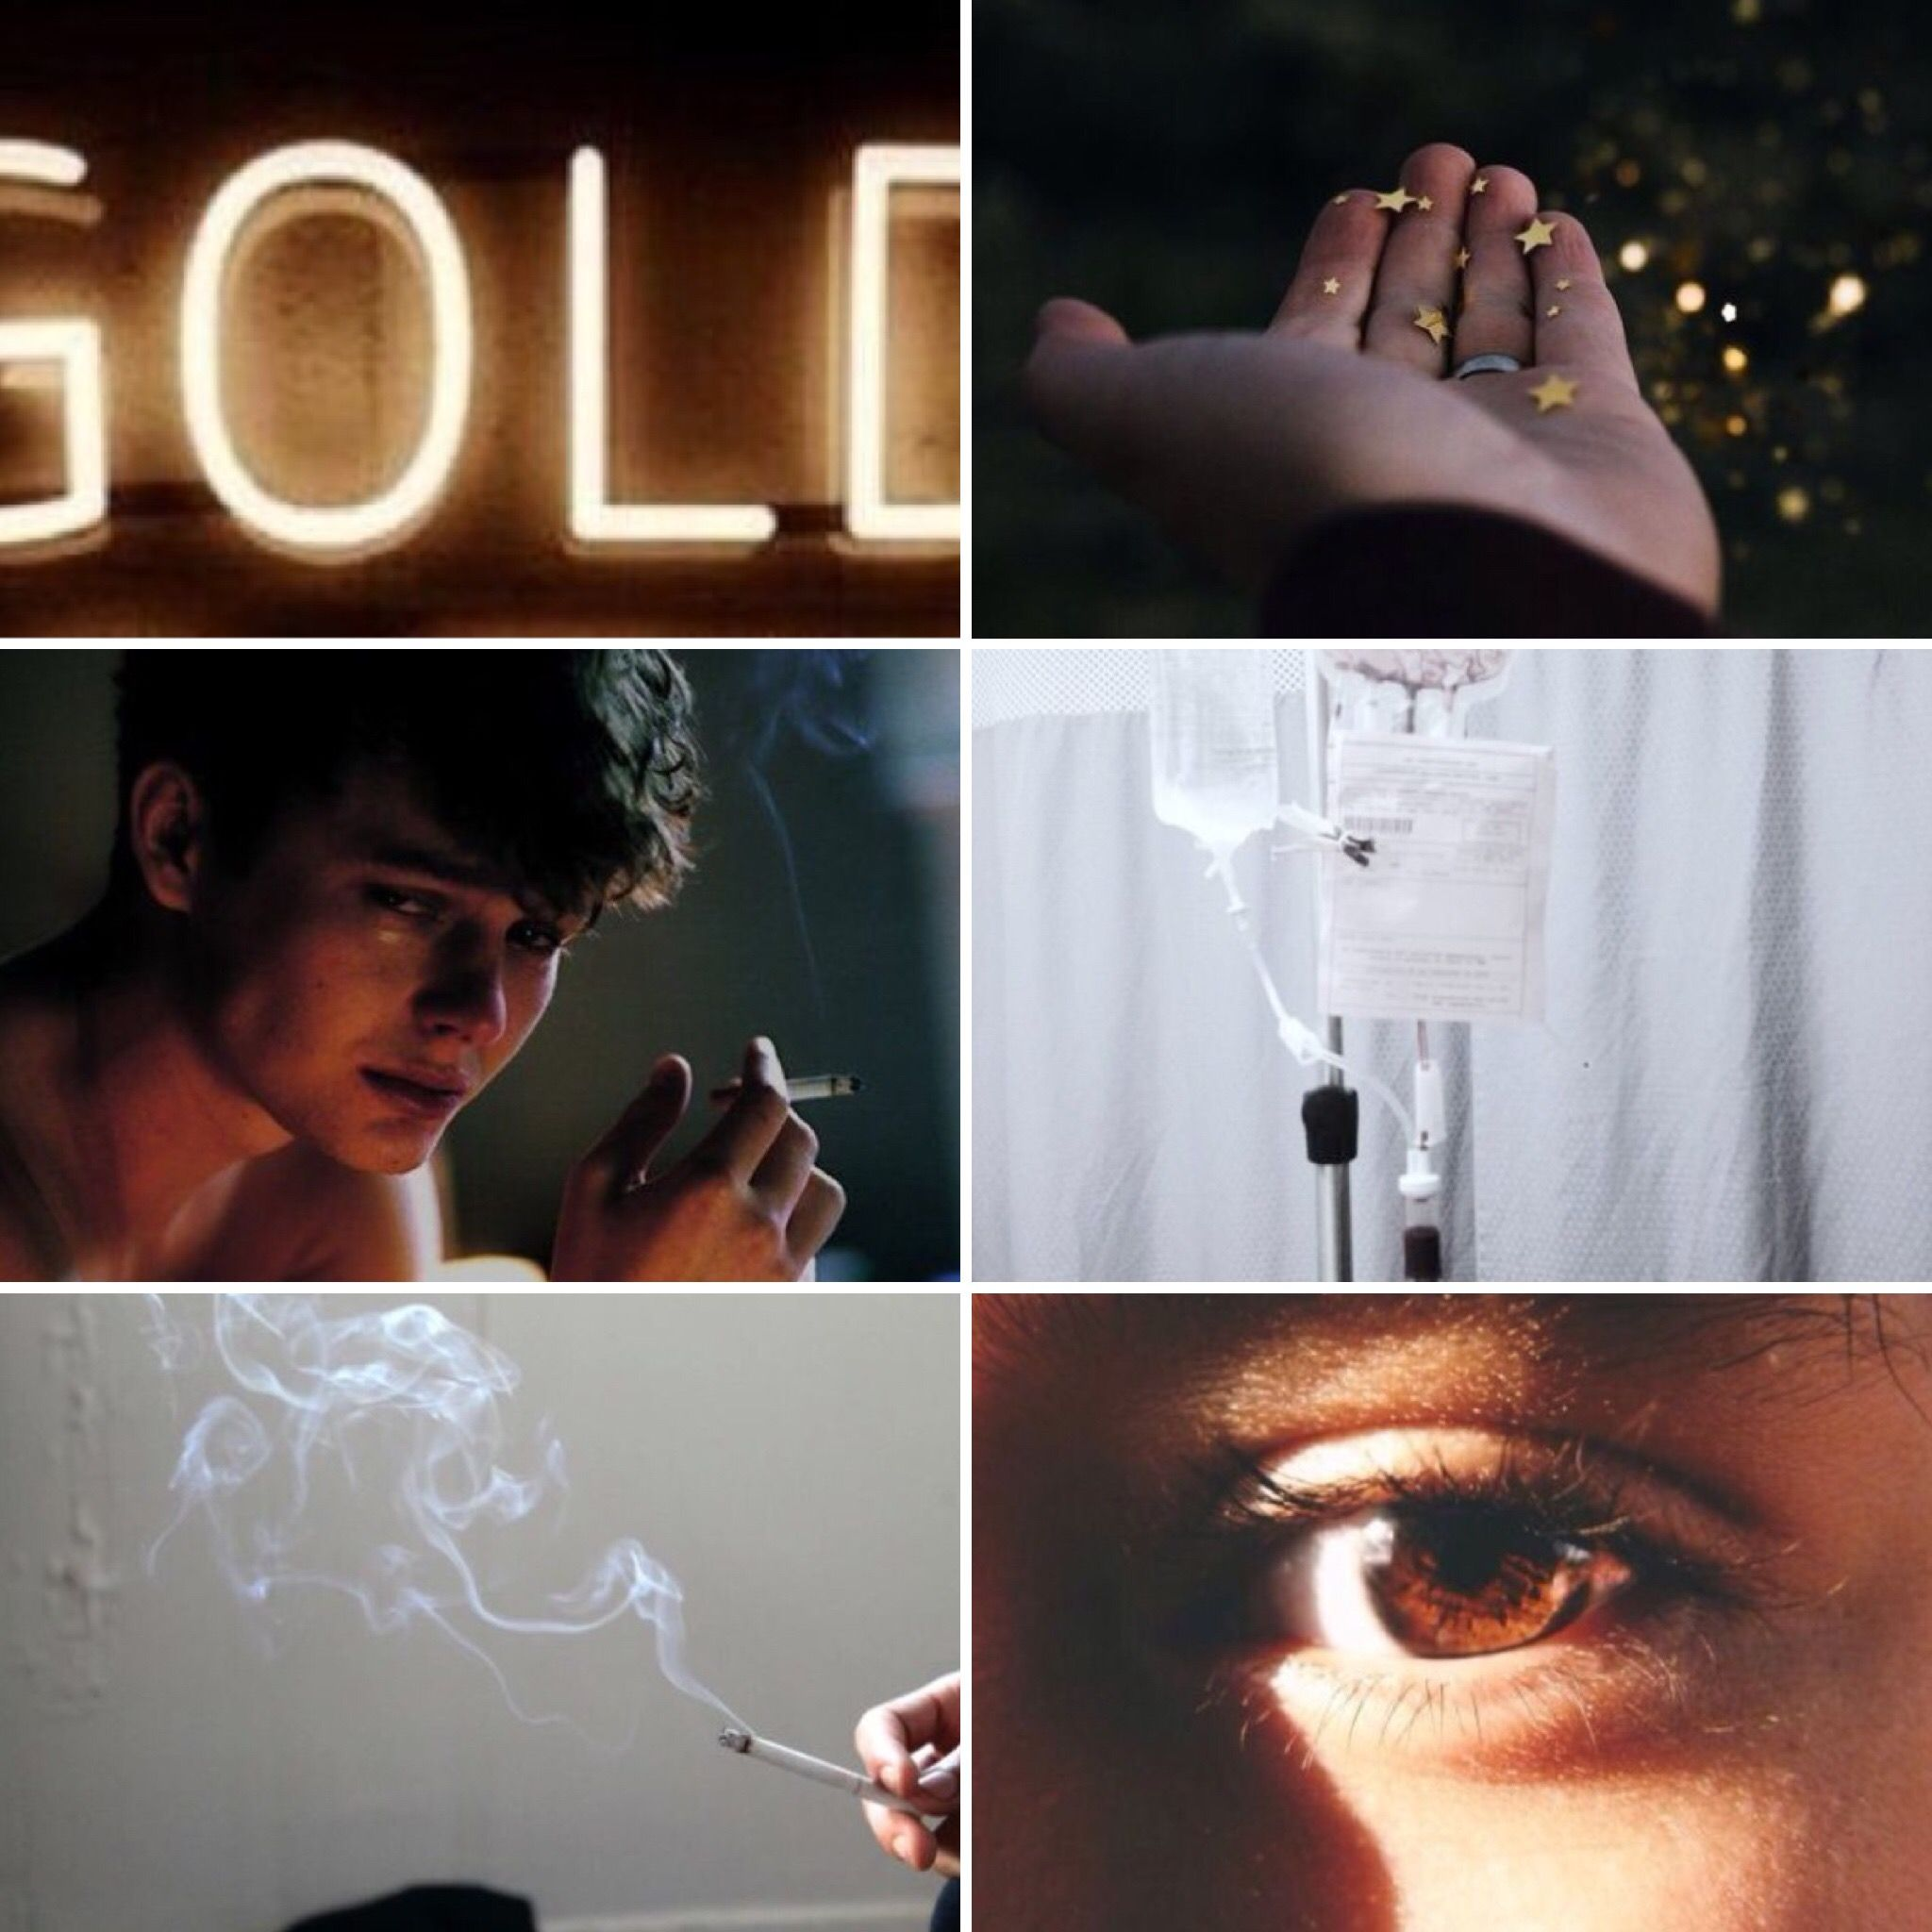 What Page Number Is The Quote Stay Gold Ponyboy On: Aesthetic/Mood Boards